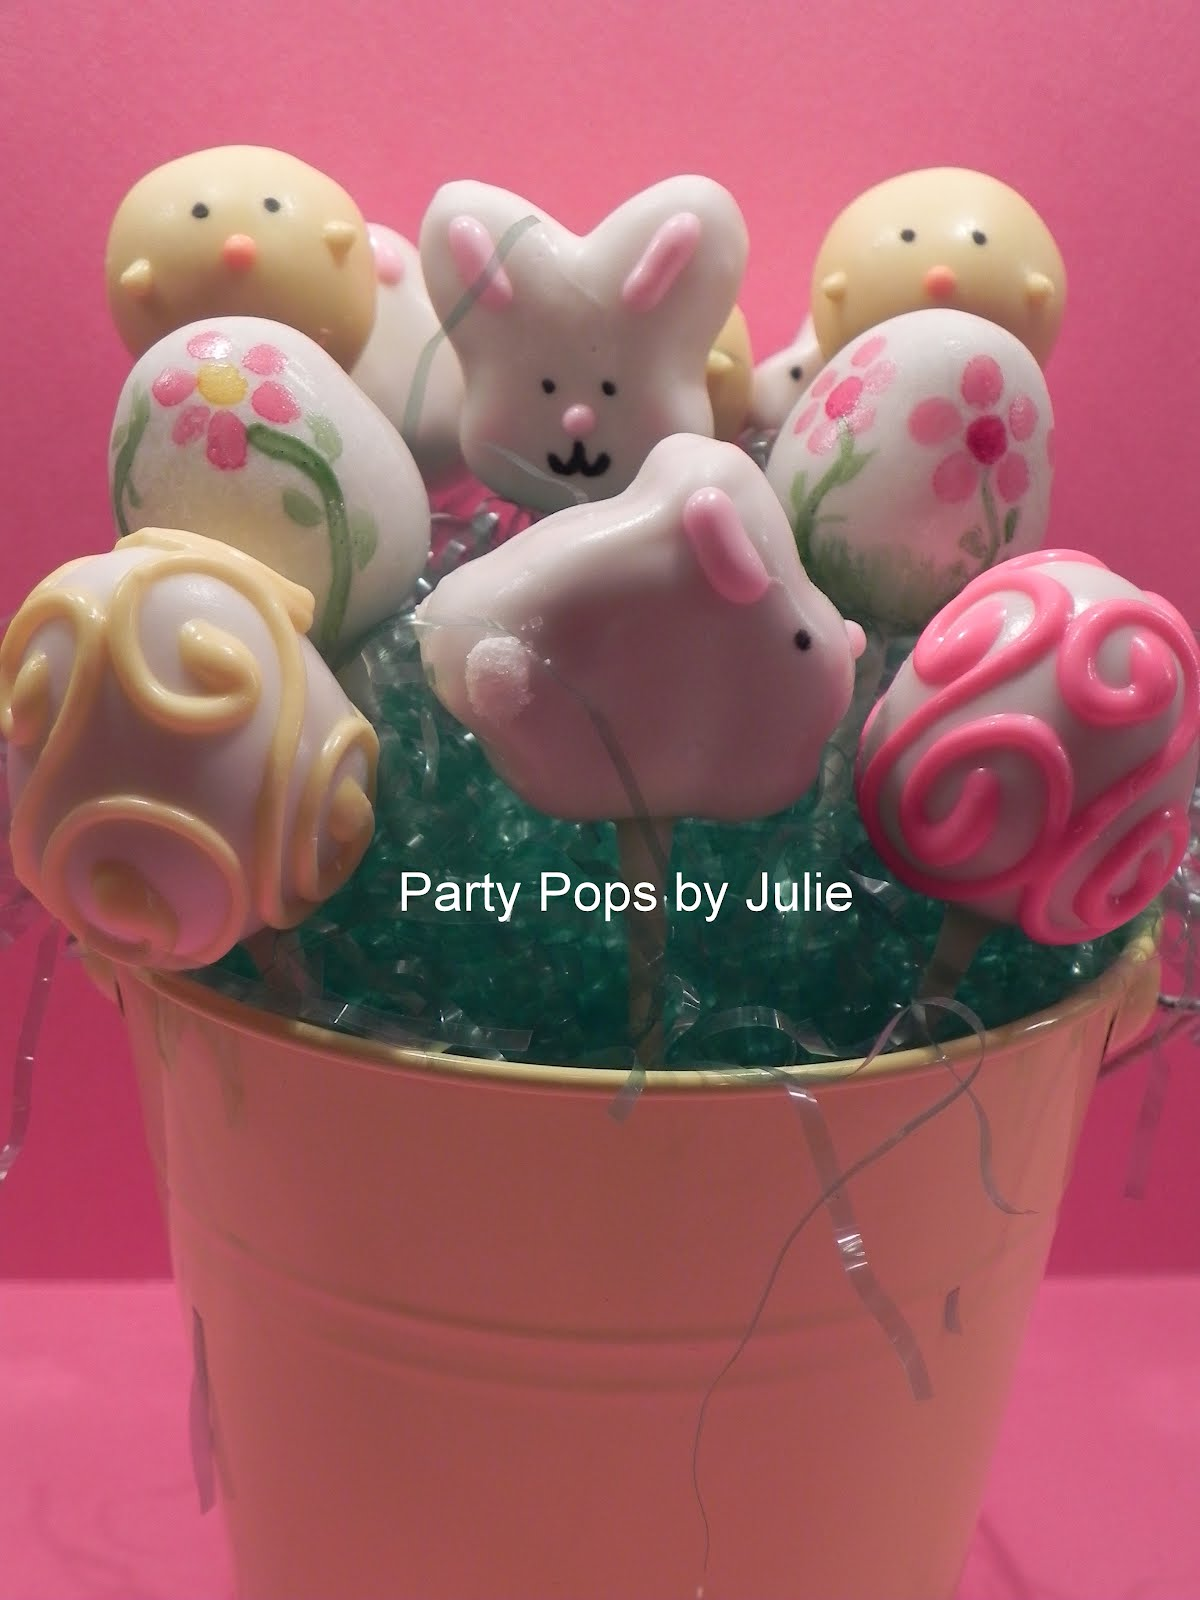 Nashville S Party Pops By Julie 2012 Easter Cake Pop Assortment